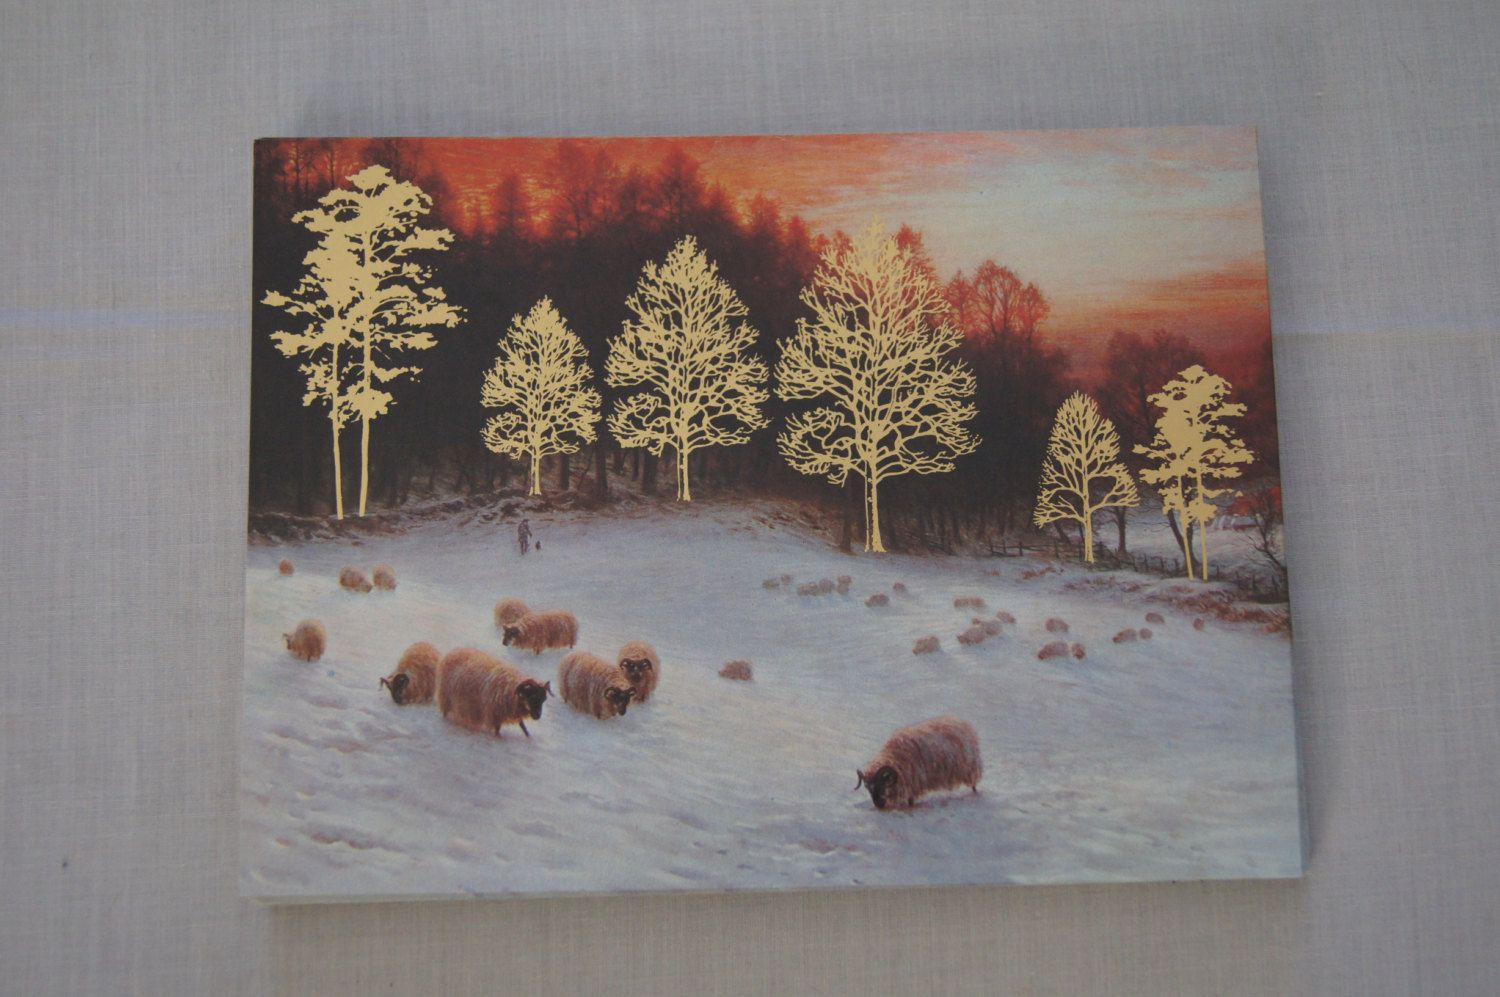 Vintage - burgoyne christmas cards with snowy sheep and gold trees ...